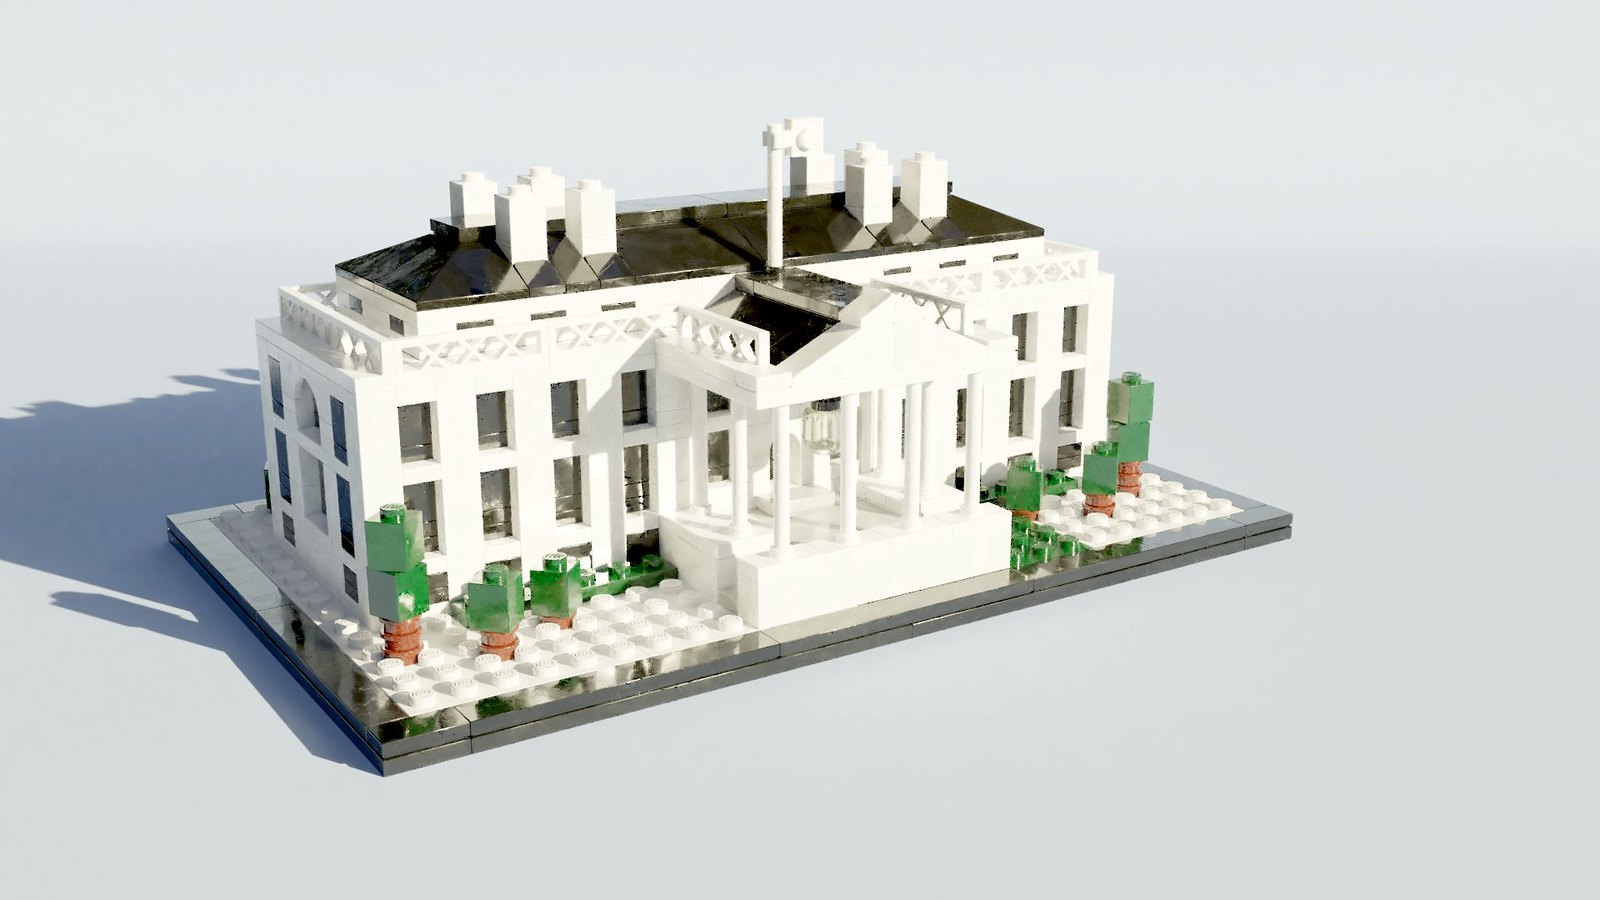 21006 The White House by Steven Reid, 2017